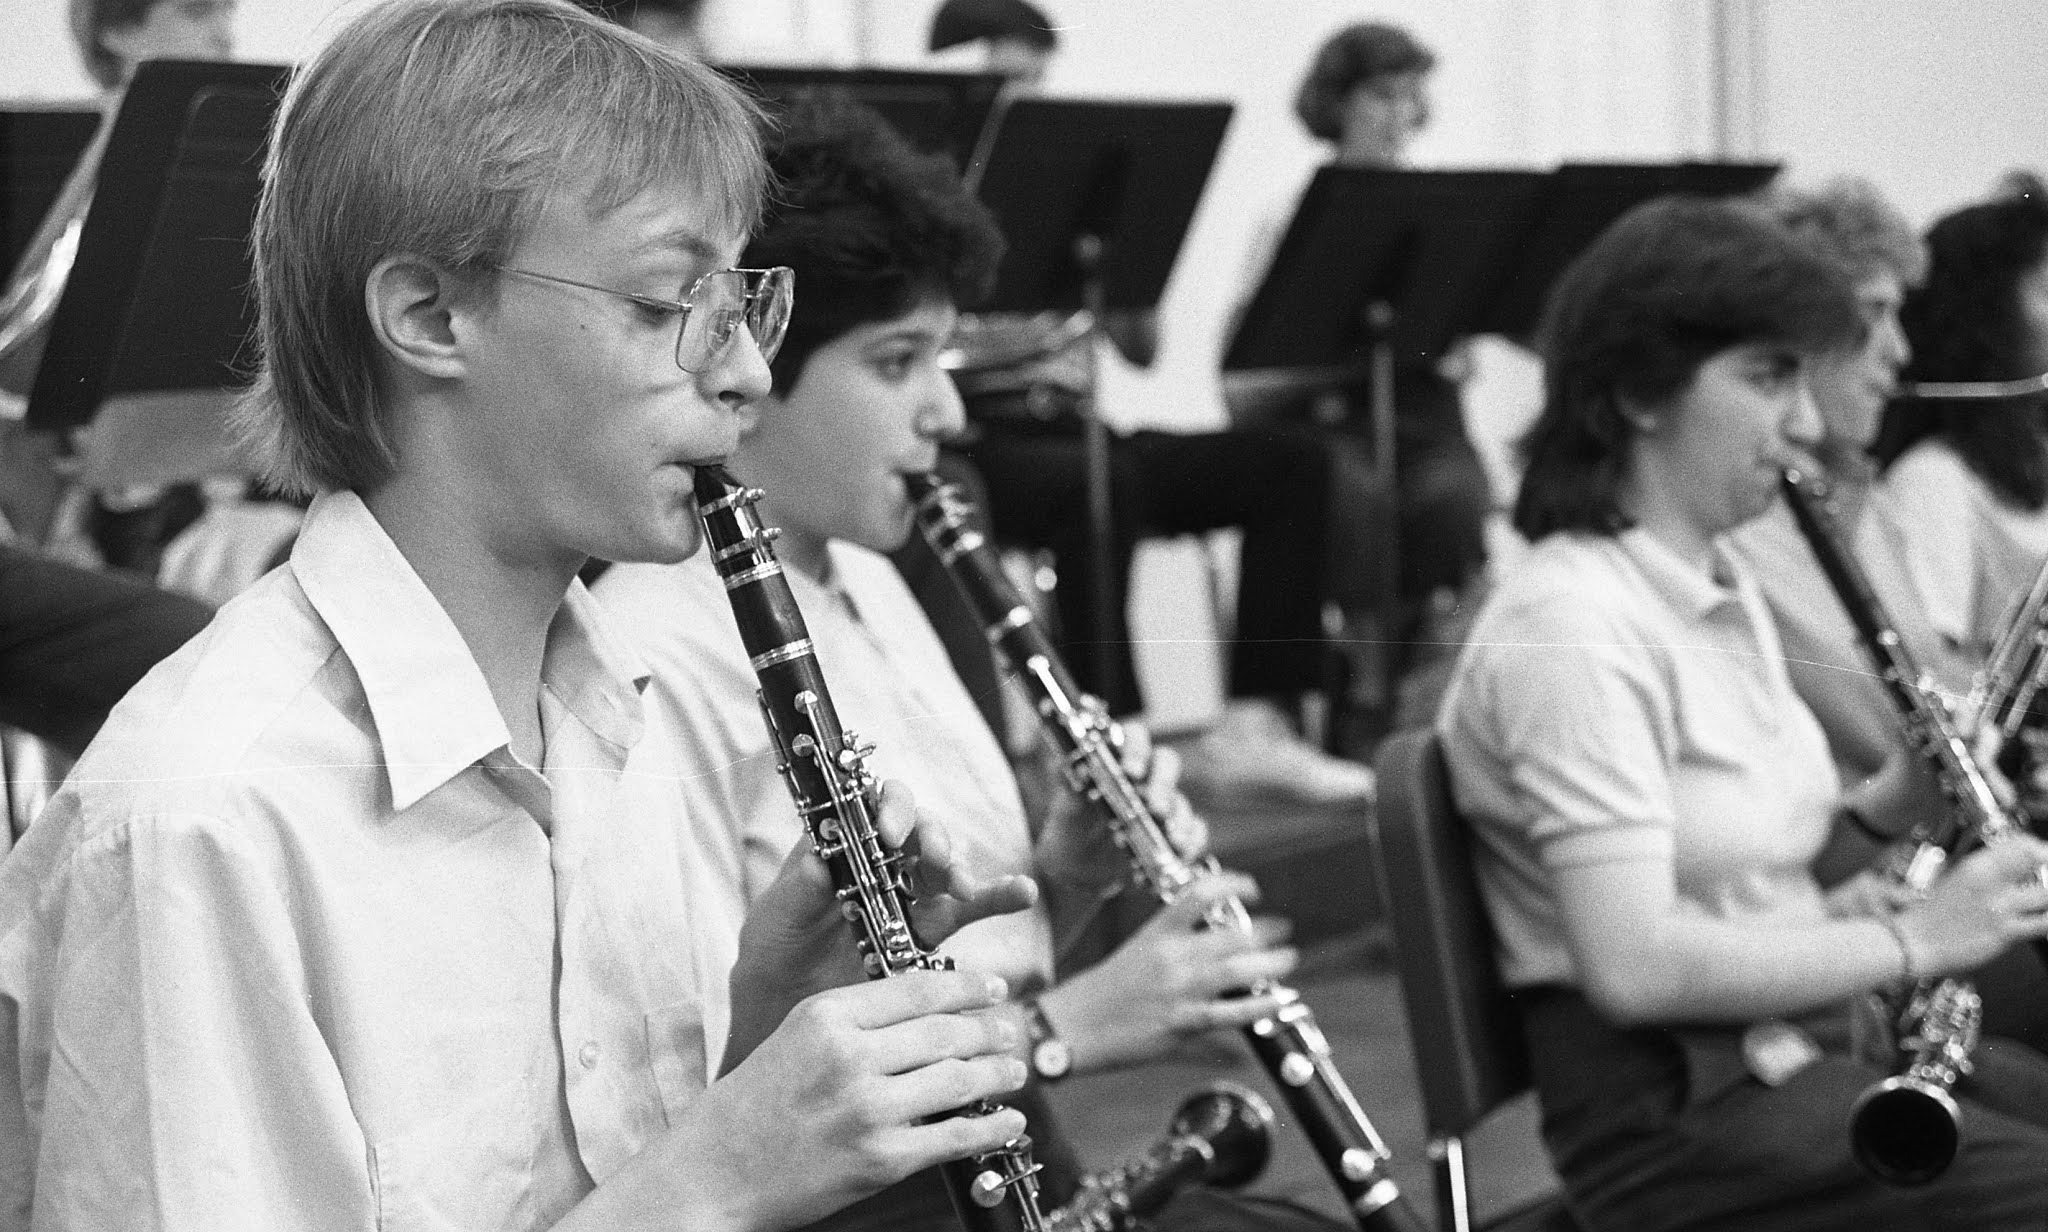 Caption: Students in the 1987 World Youth Symphony Orchestra, Credit: Interlochen Center for the Arts